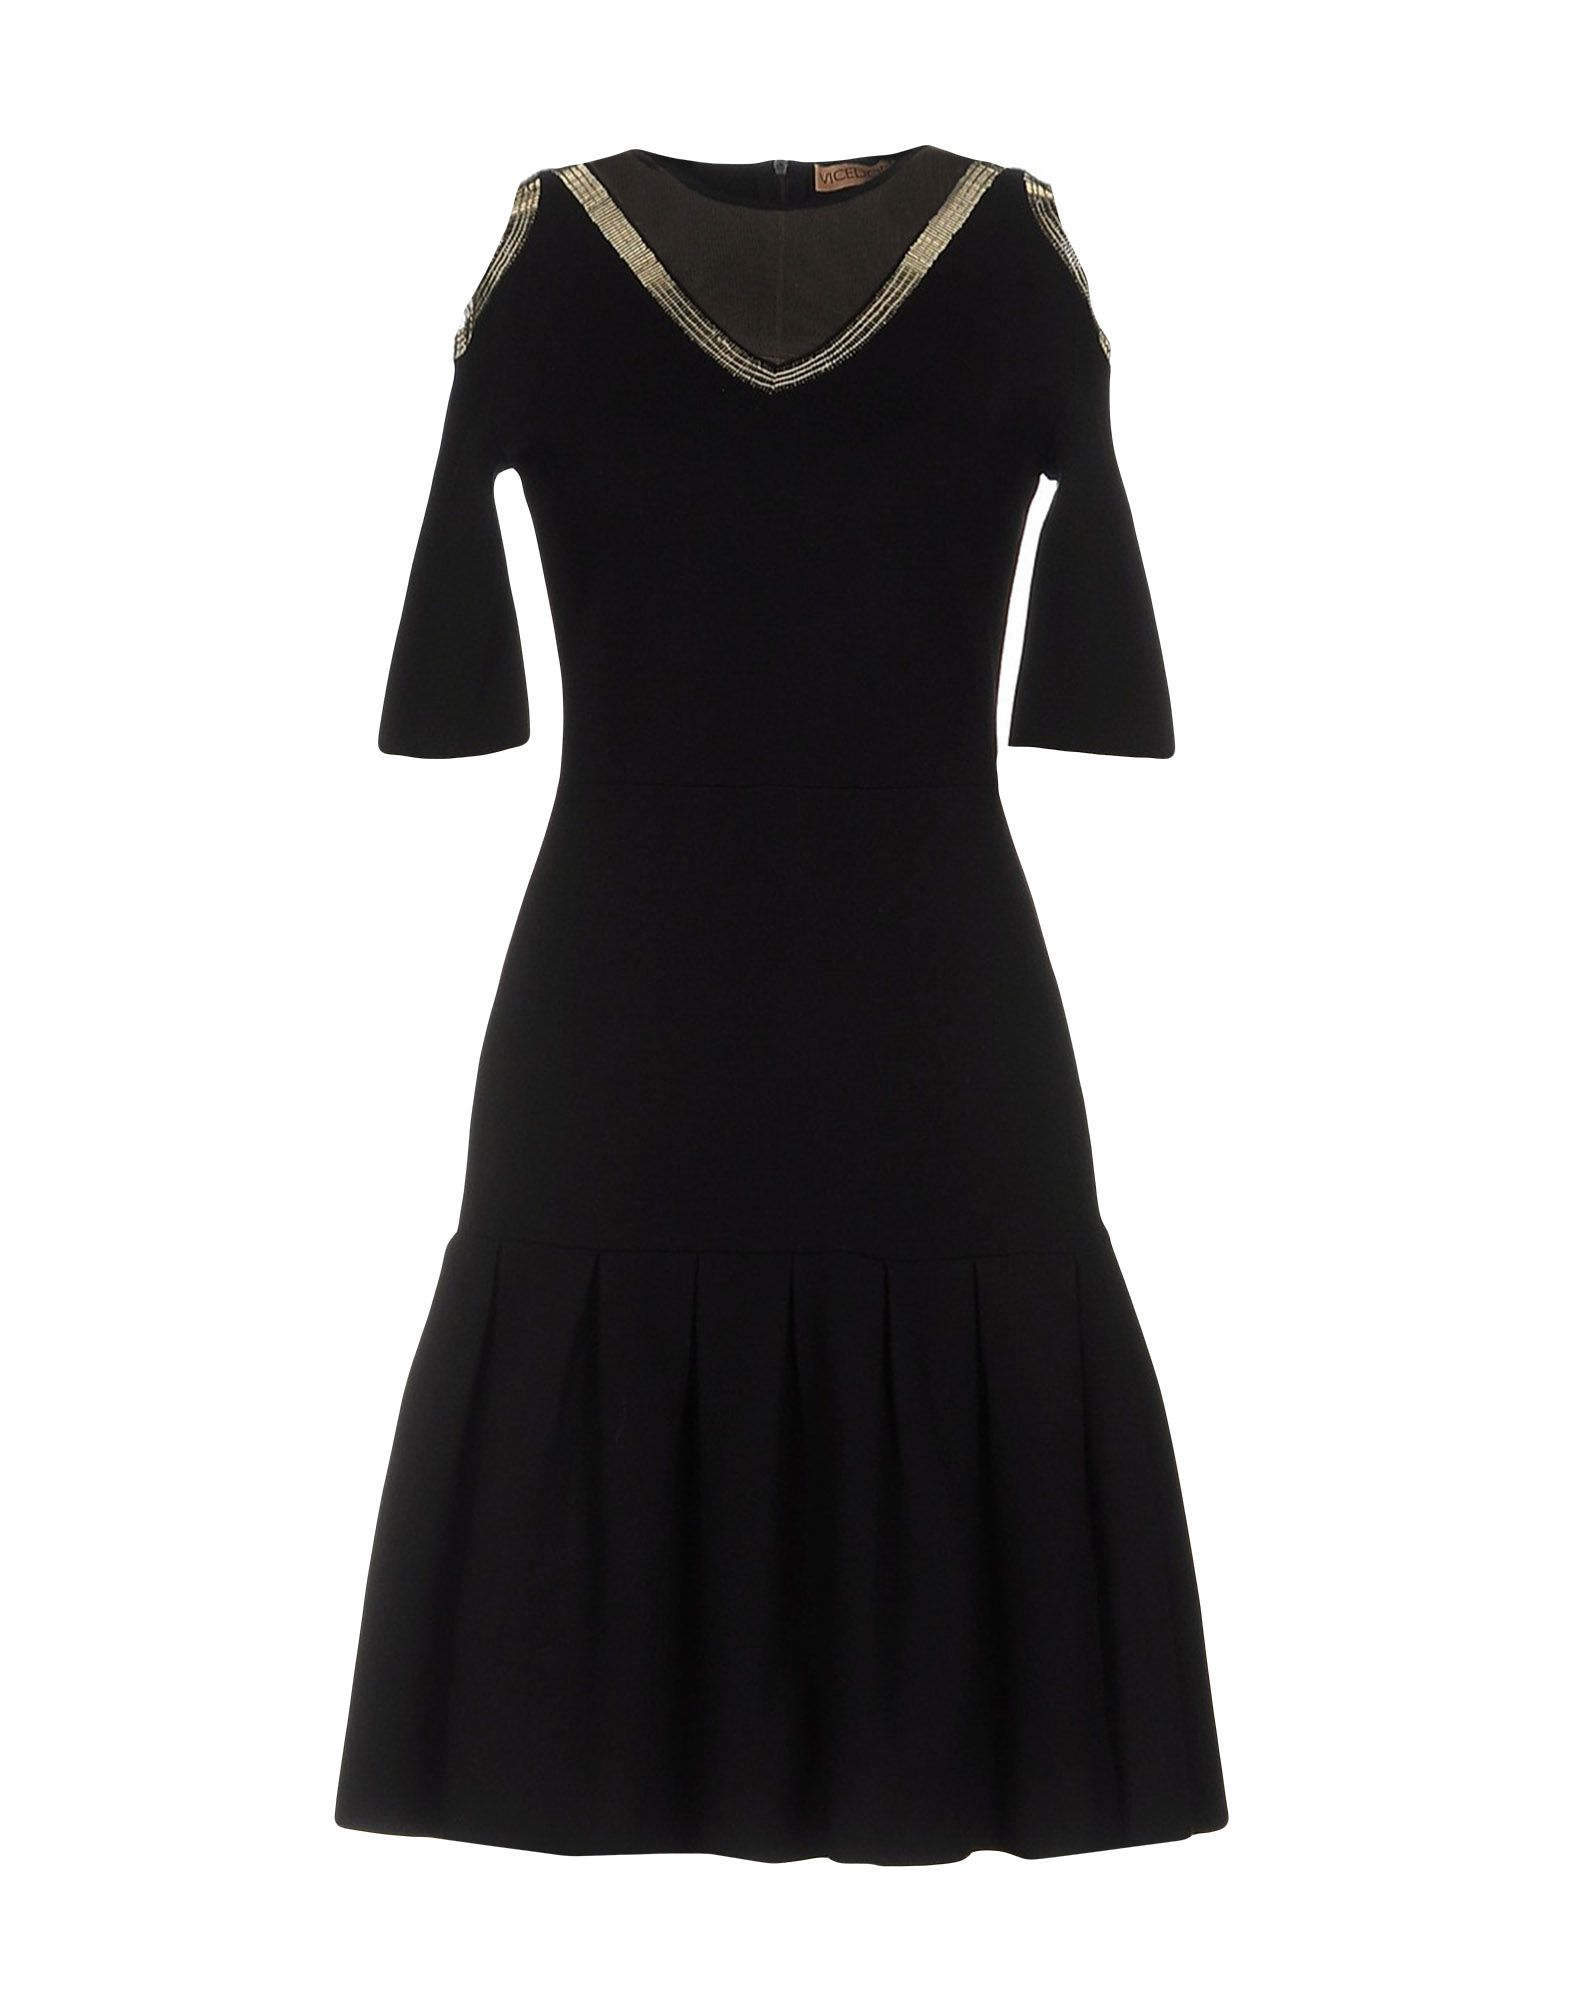 VICEDOMINI Short Dress in Black